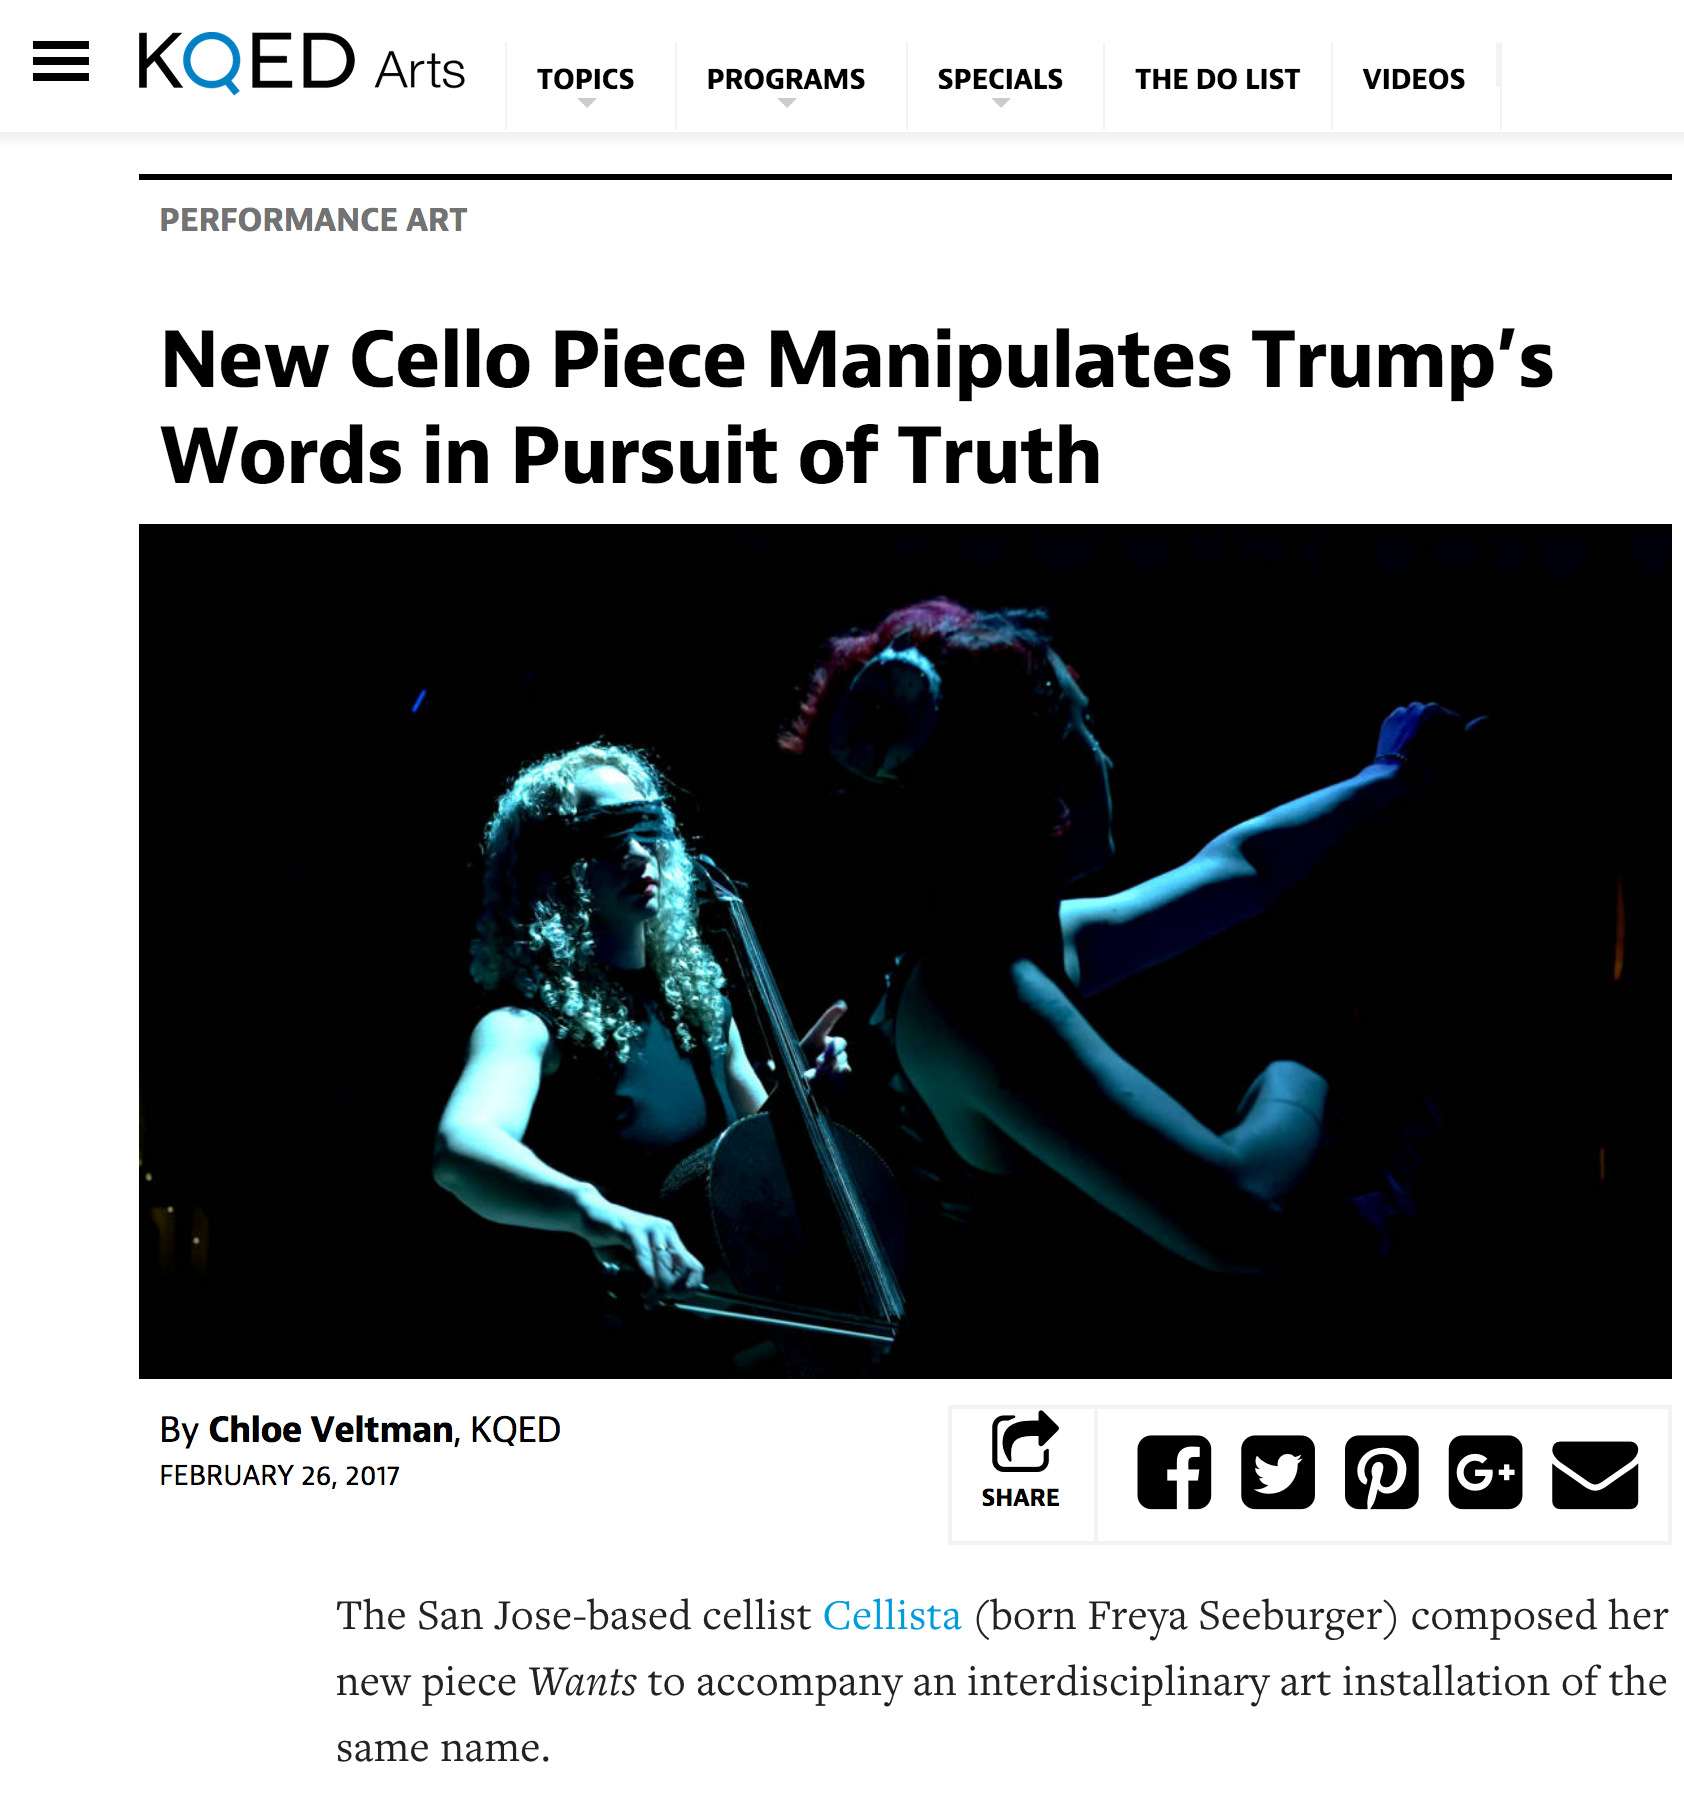 Cellista's performance art project entitled WANTS is featured in KQED Arts 100 Days of Art.